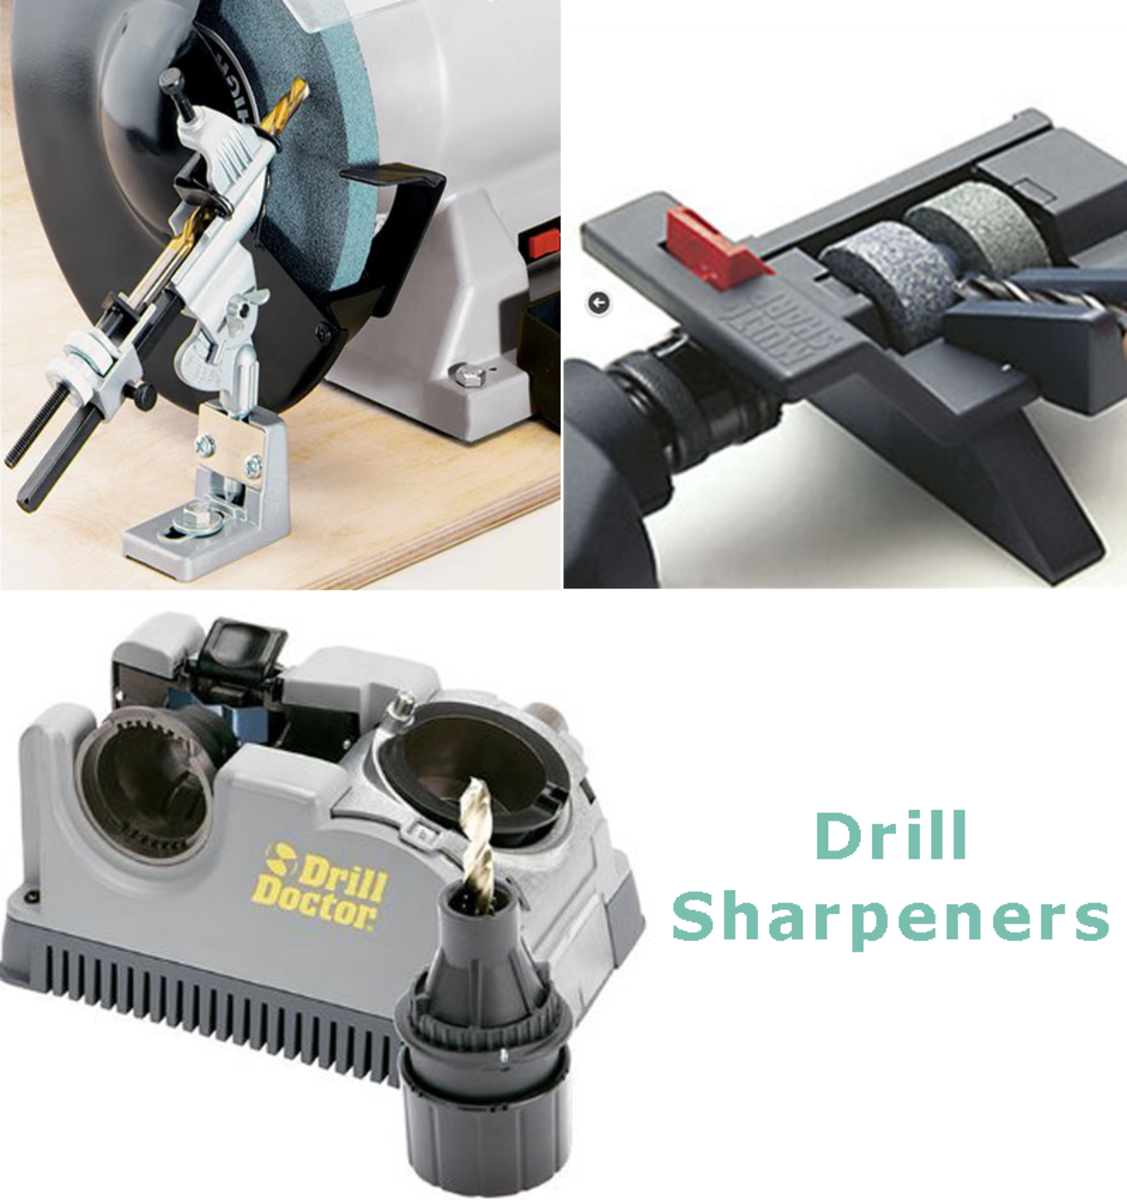 The Best Drill Sharpeners: A Guide for Beginners